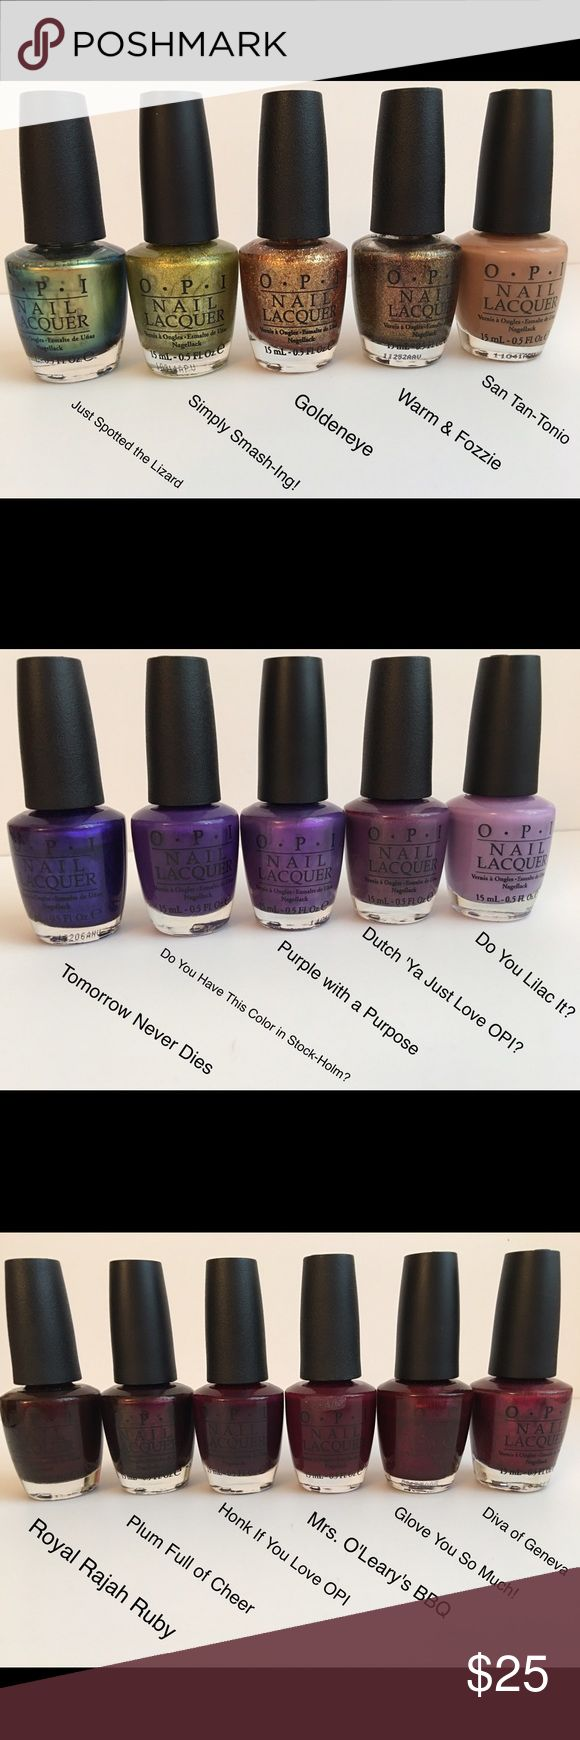 OPI nail polish set Polishes are sold in a set of 5. You get to pick the color. The set of 5 polishes is for $25. OPI Other